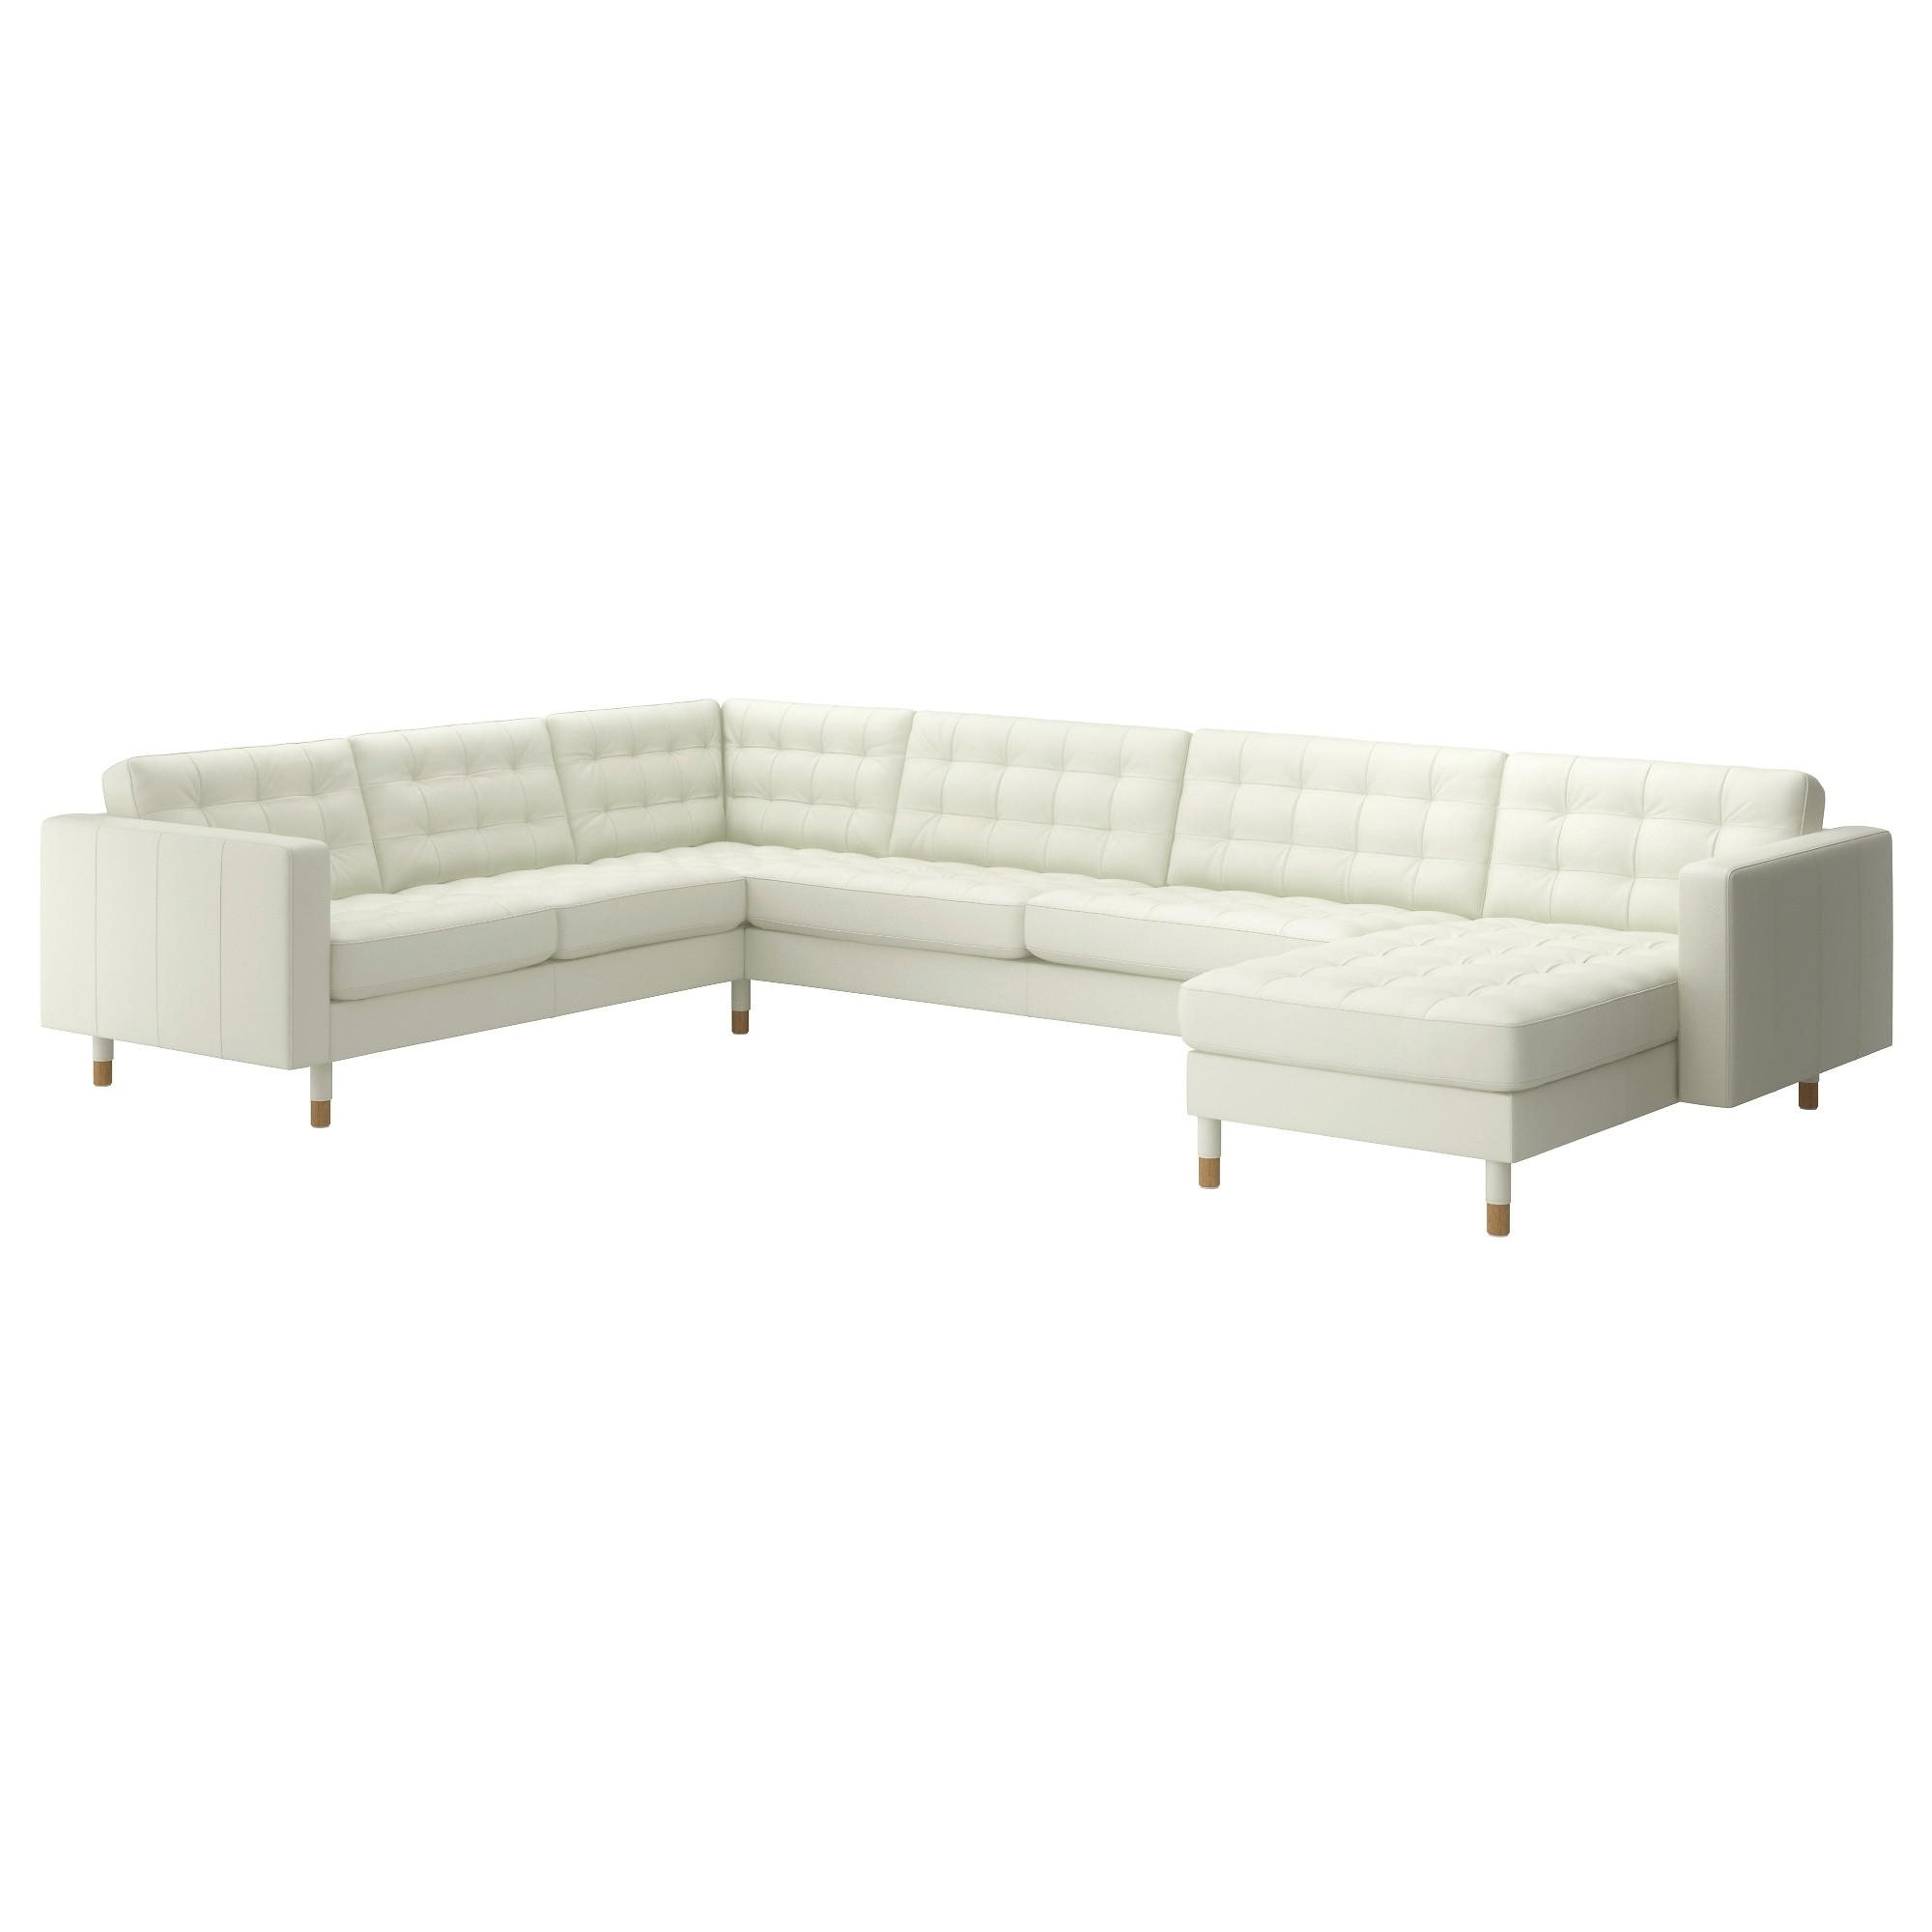 Sectional Sofas & Couches – Ikea Inside Ikea Sectional Sofa Sleeper (View 12 of 20)